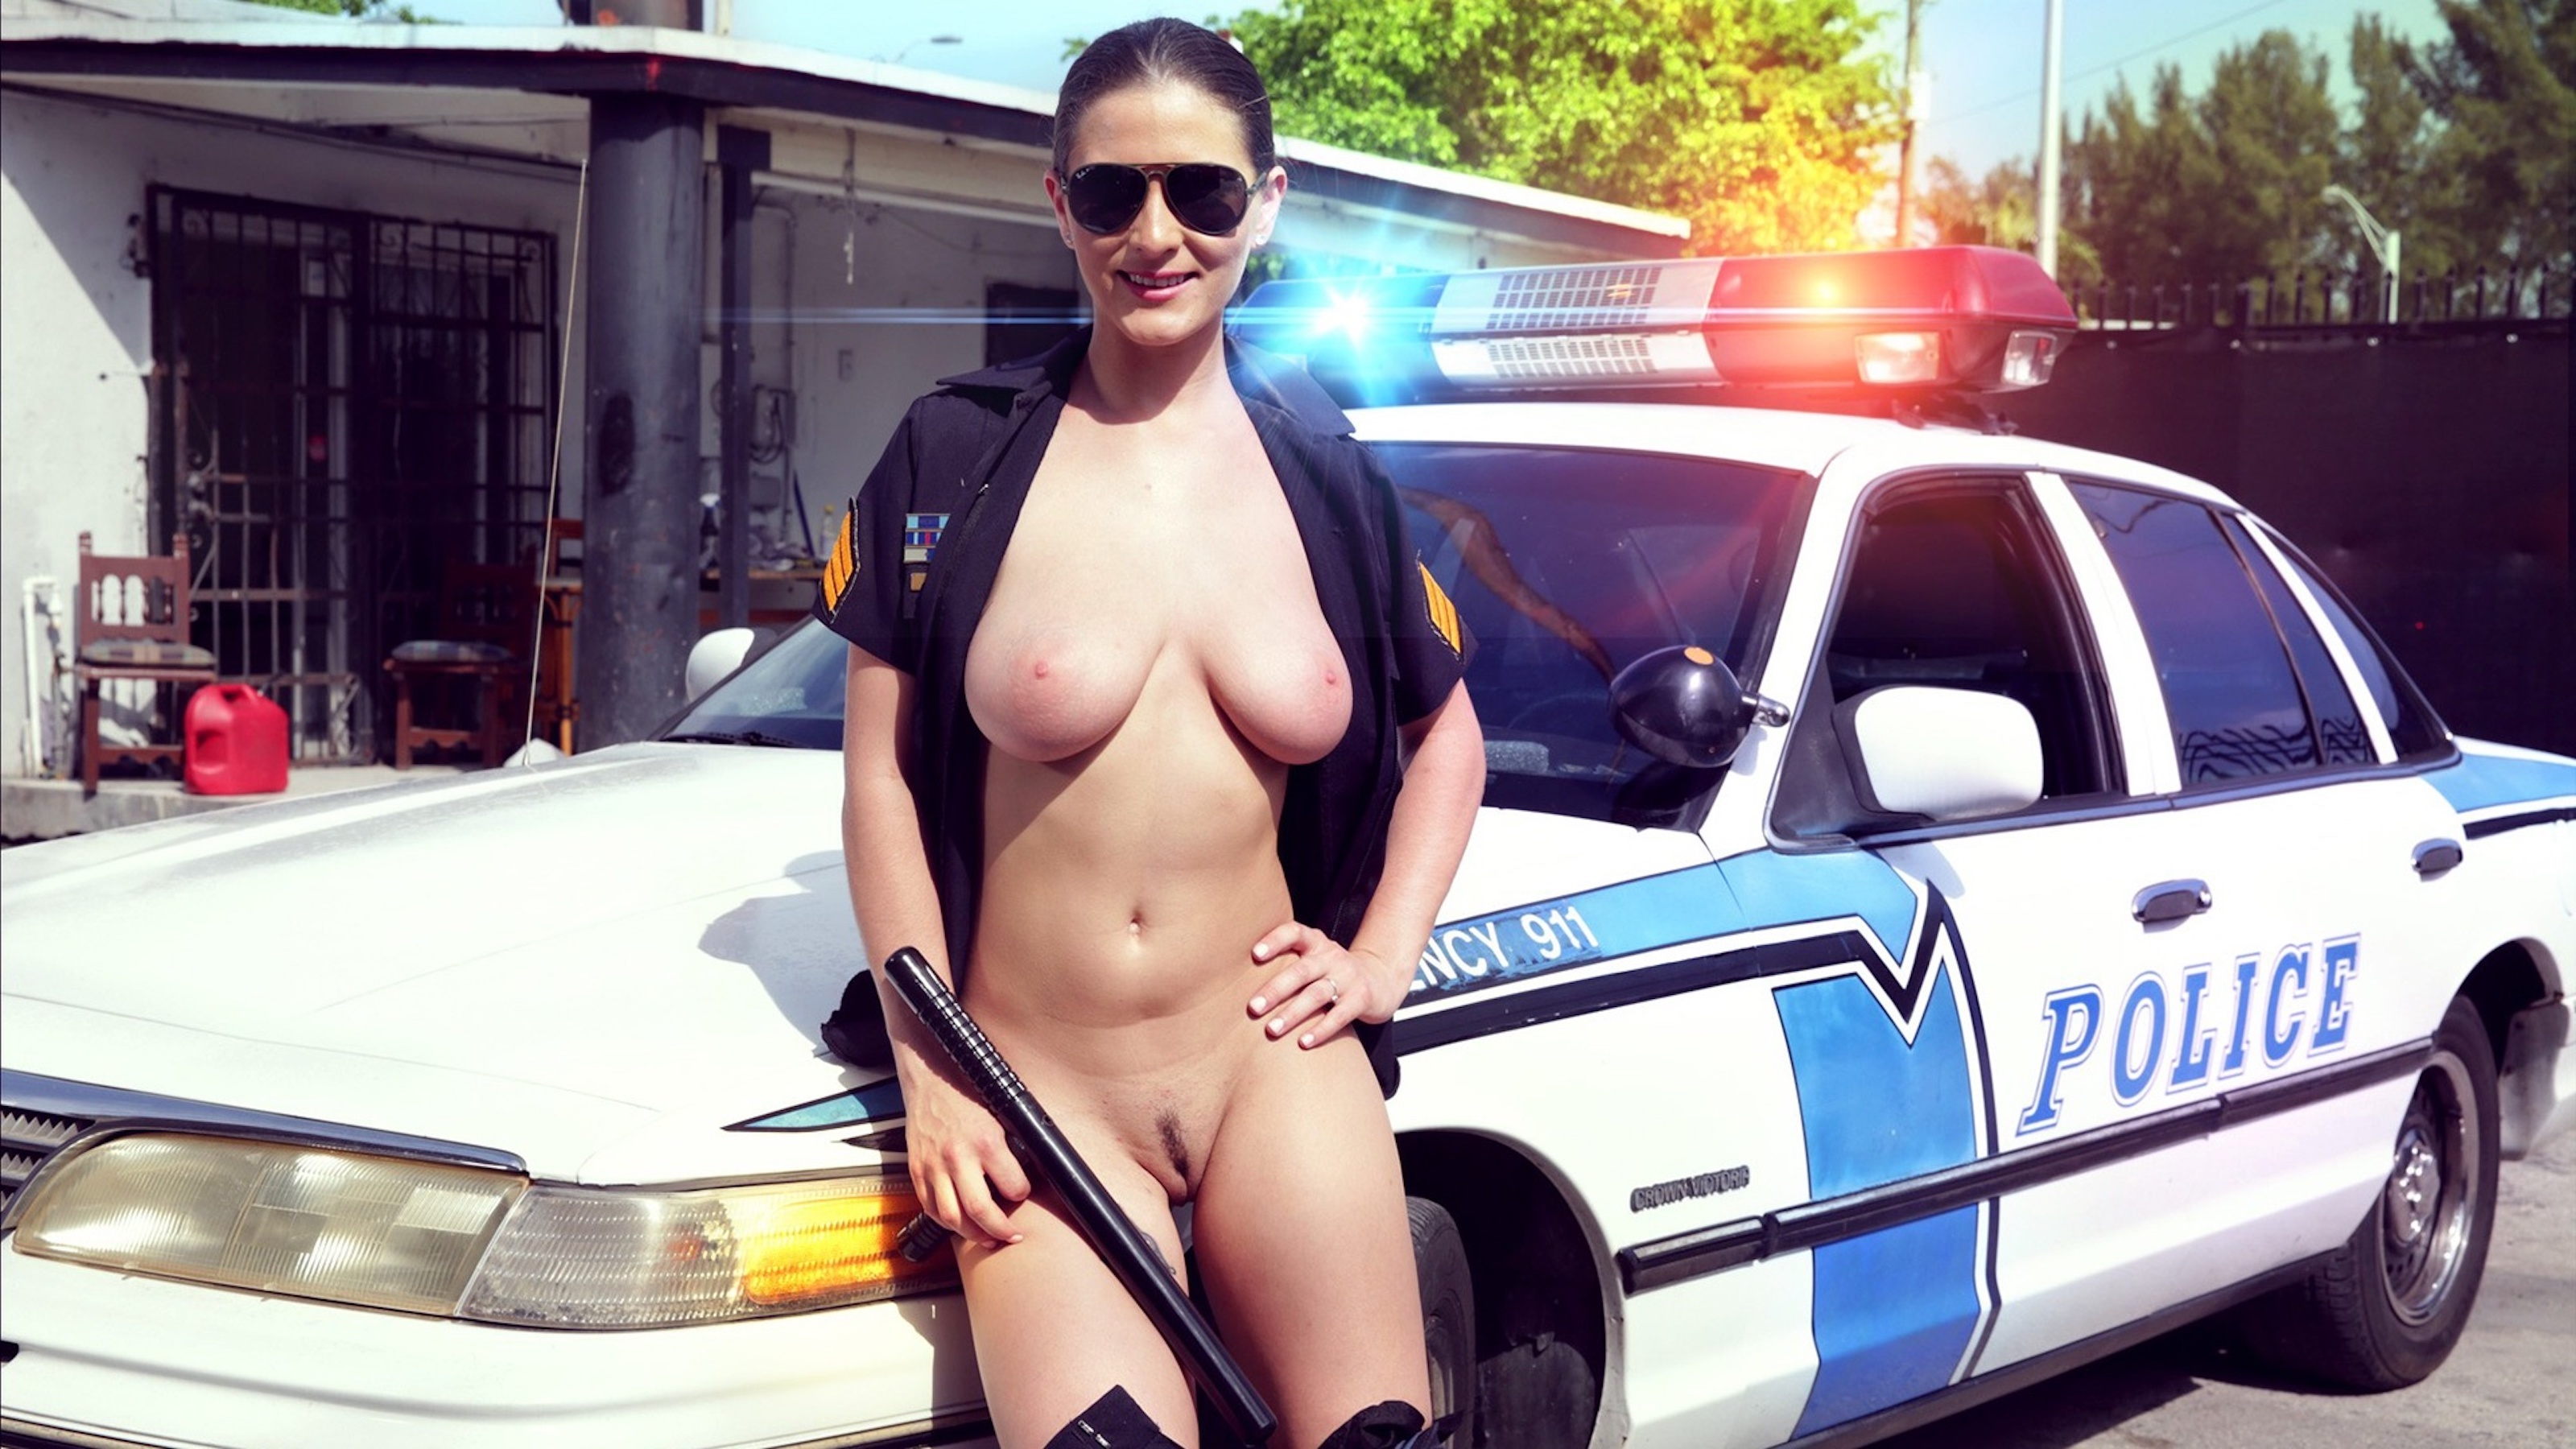 Nude Pictures Cops